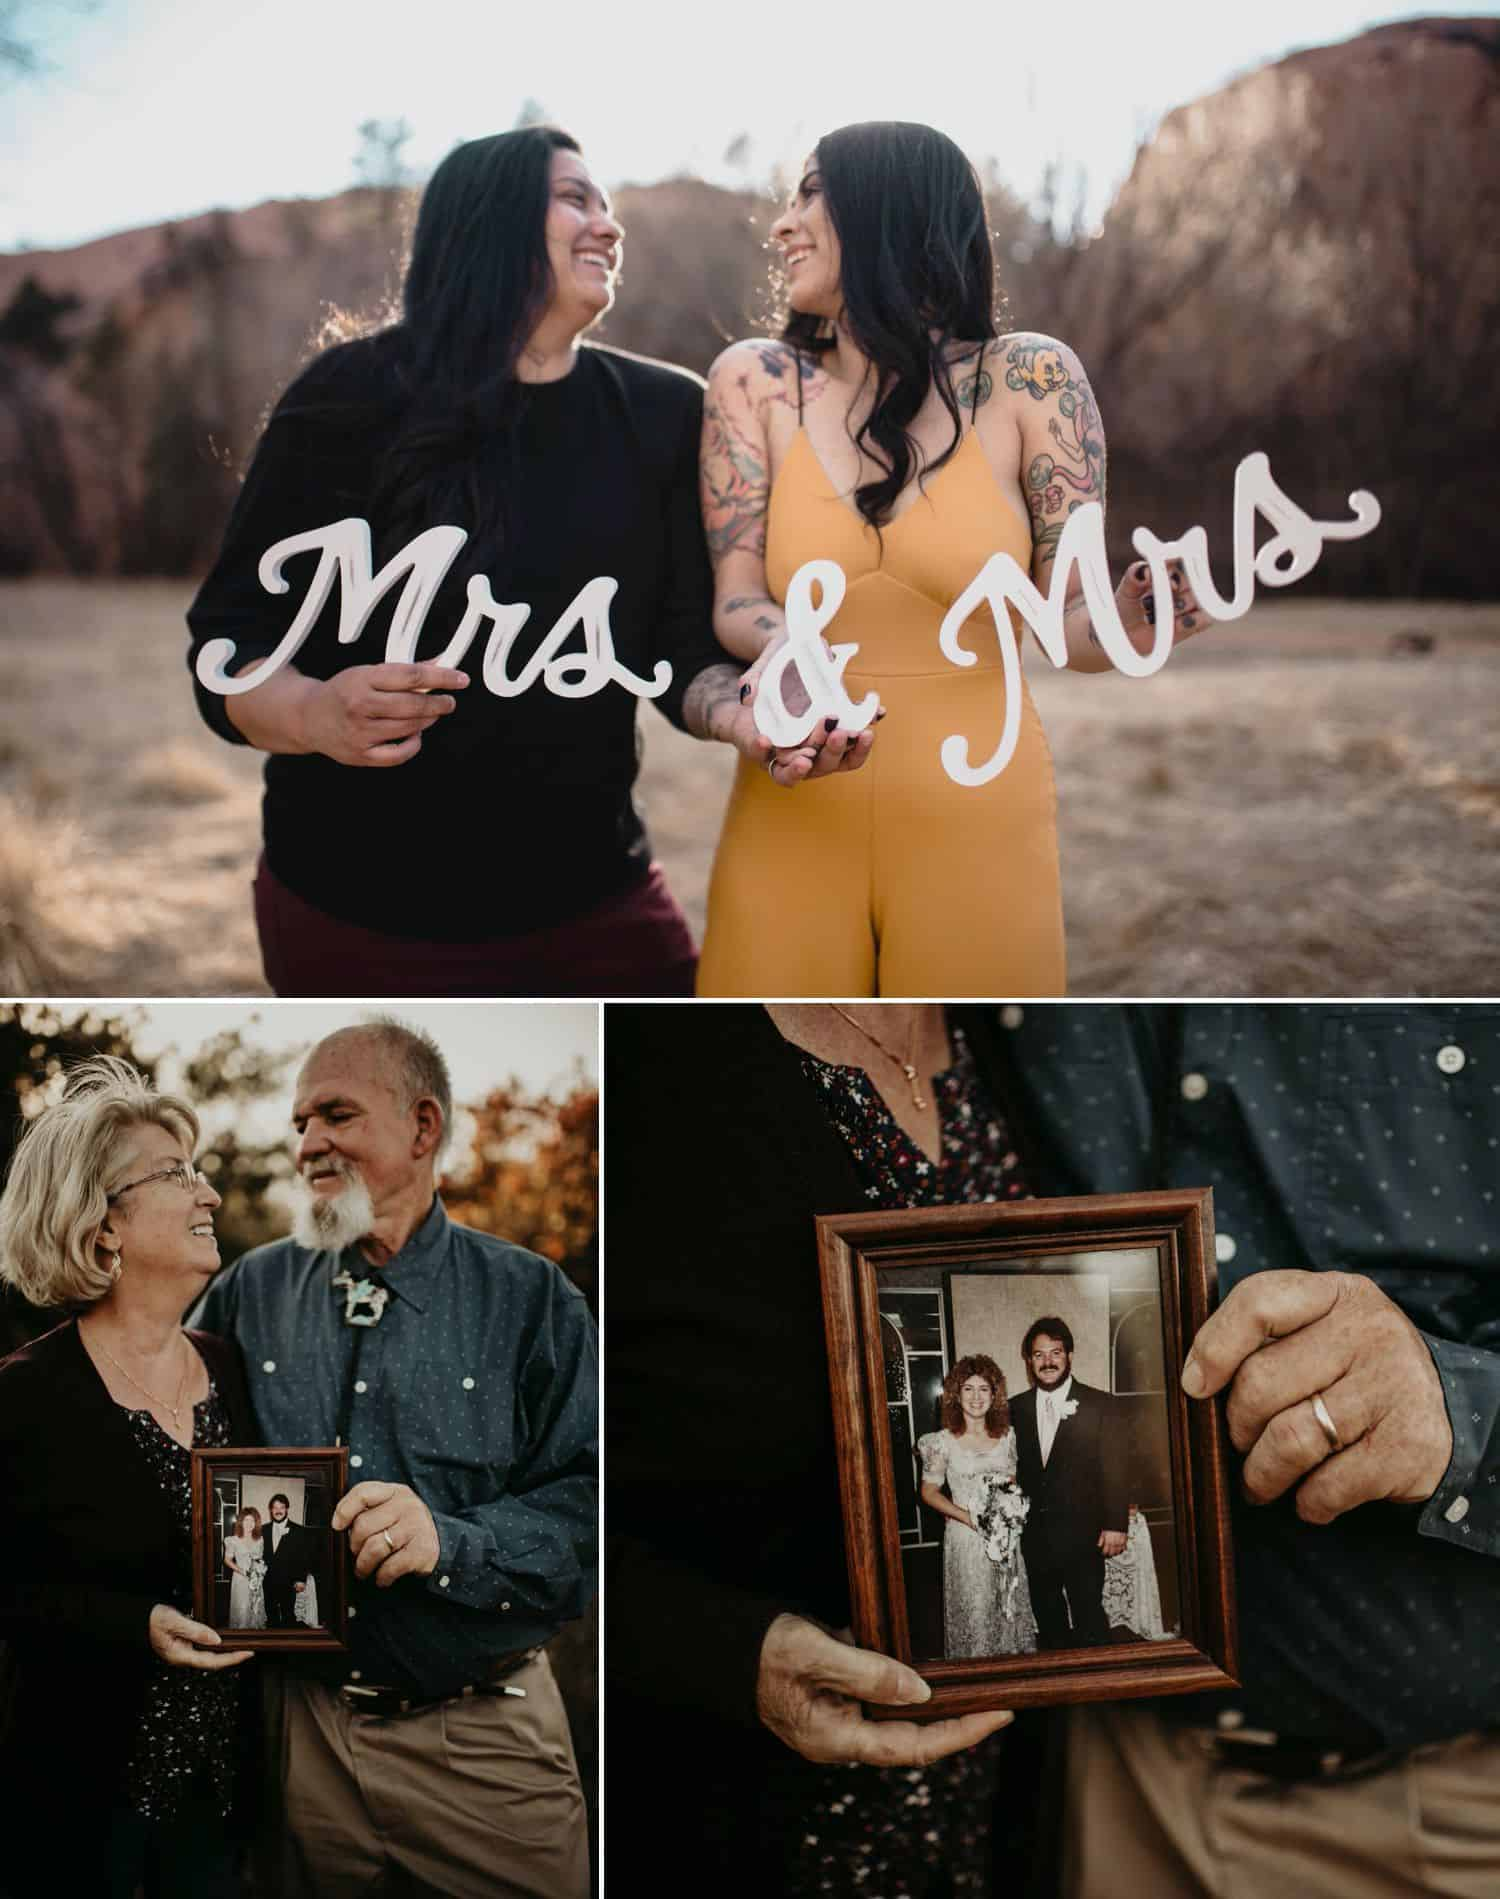 Thoughtful props can add an element of magic to any engagement session